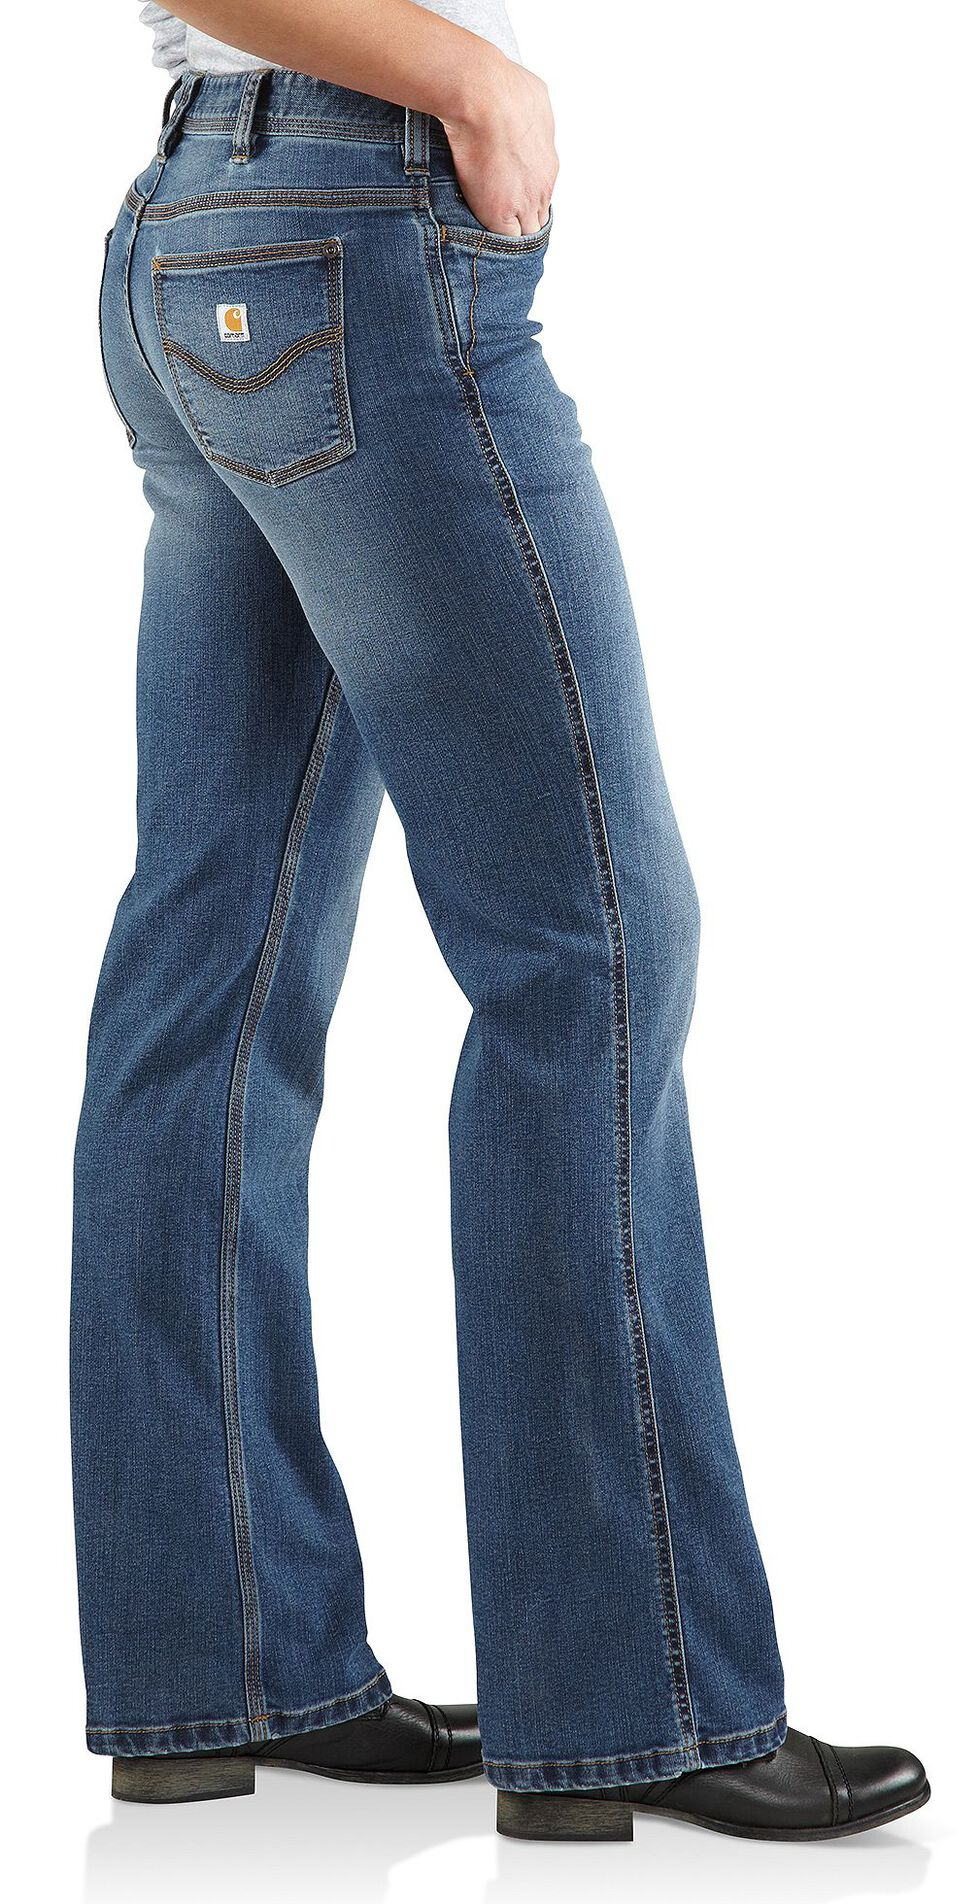 Carhartt Women's Original Fit Denim Jasper Jeans, Med Indigo, hi-res